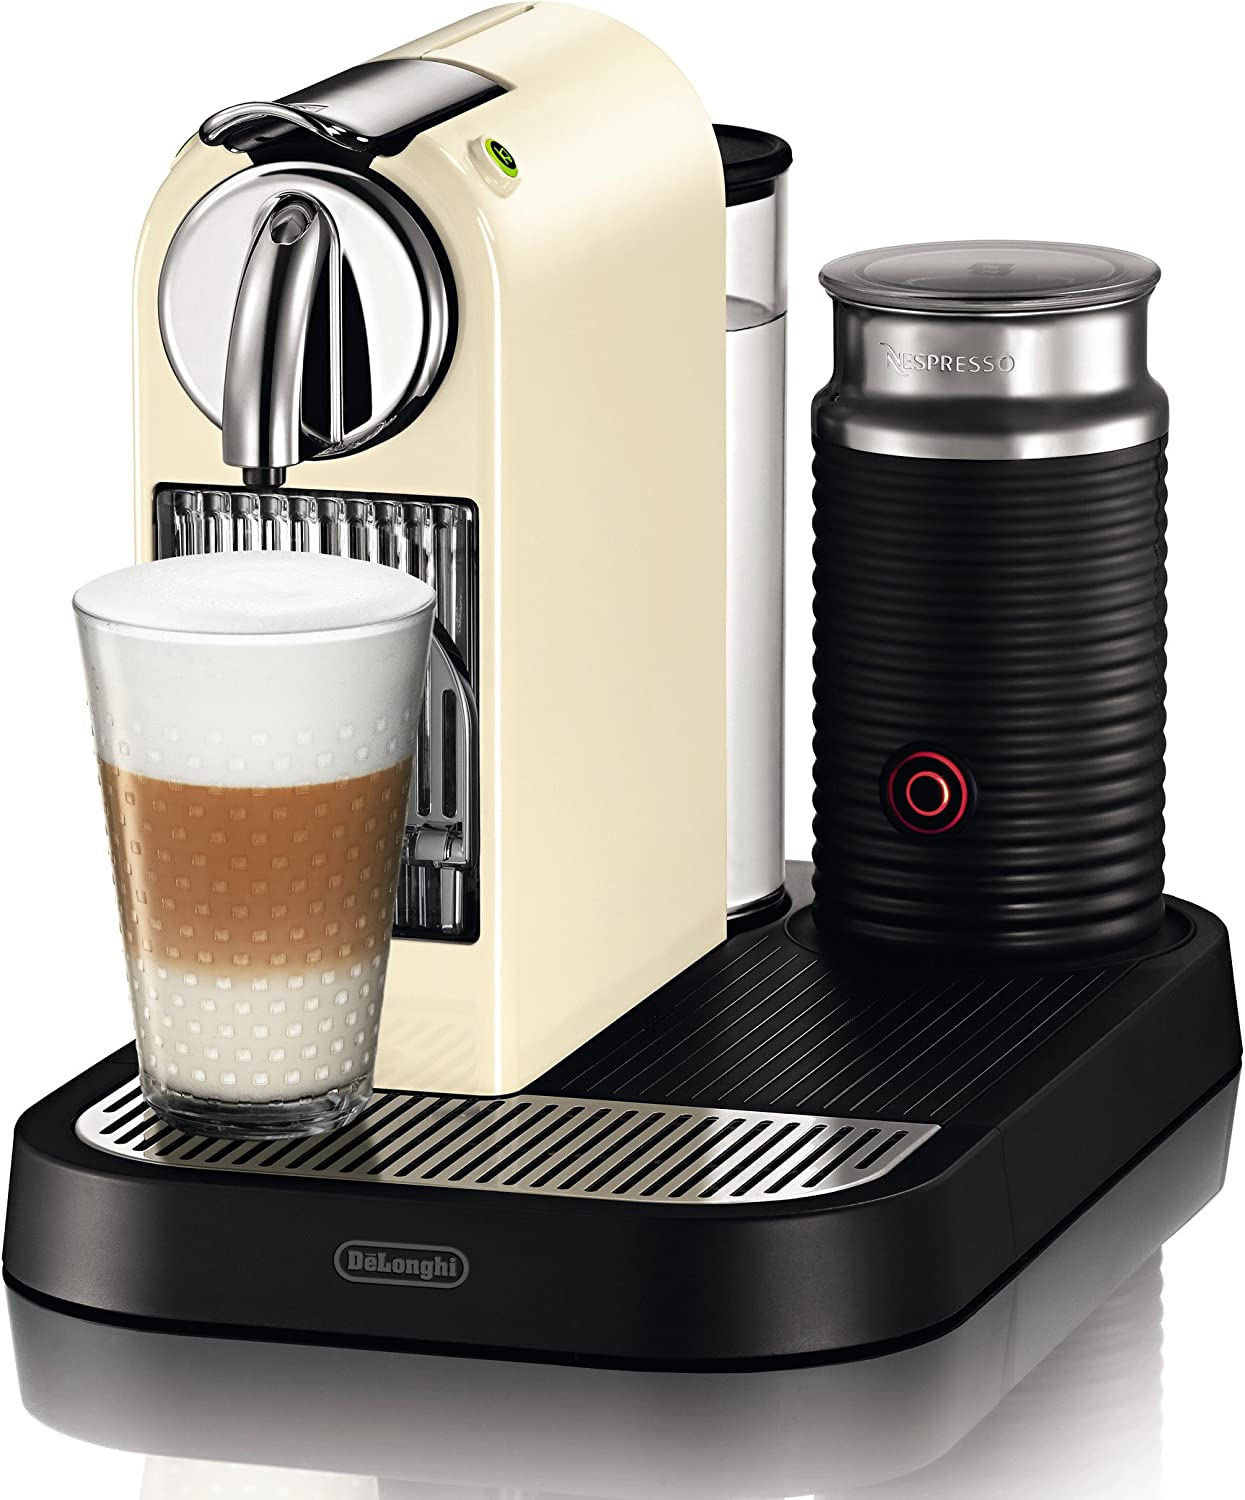 Amazon.com: En 266 CWAE Citiz & Milk Nespresso: Electronics